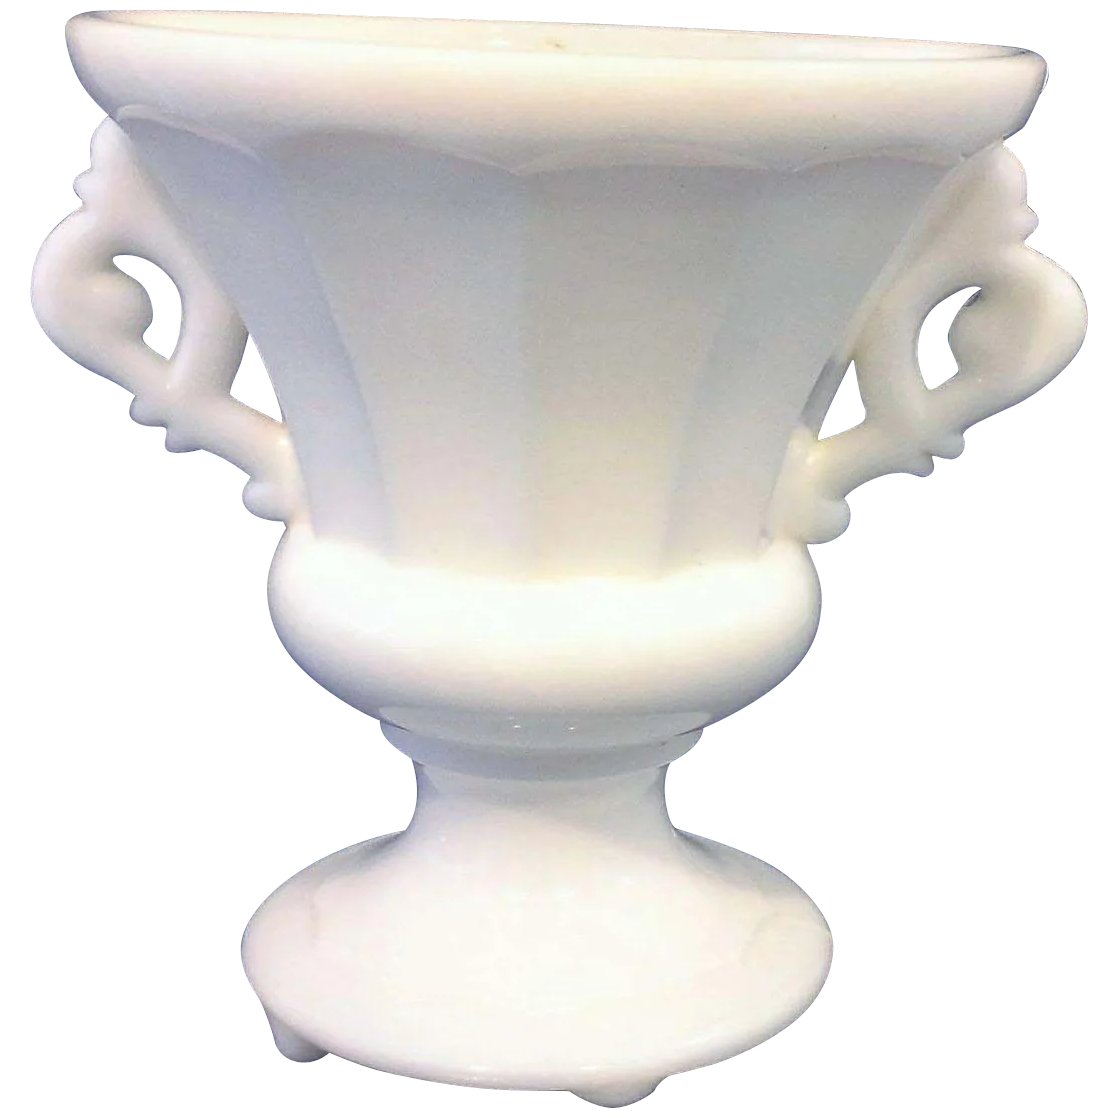 White milk glass urn vase paneled elaborate handles art deco white milk glass urn vase paneled elaborate handles art deco click to expand reviewsmspy